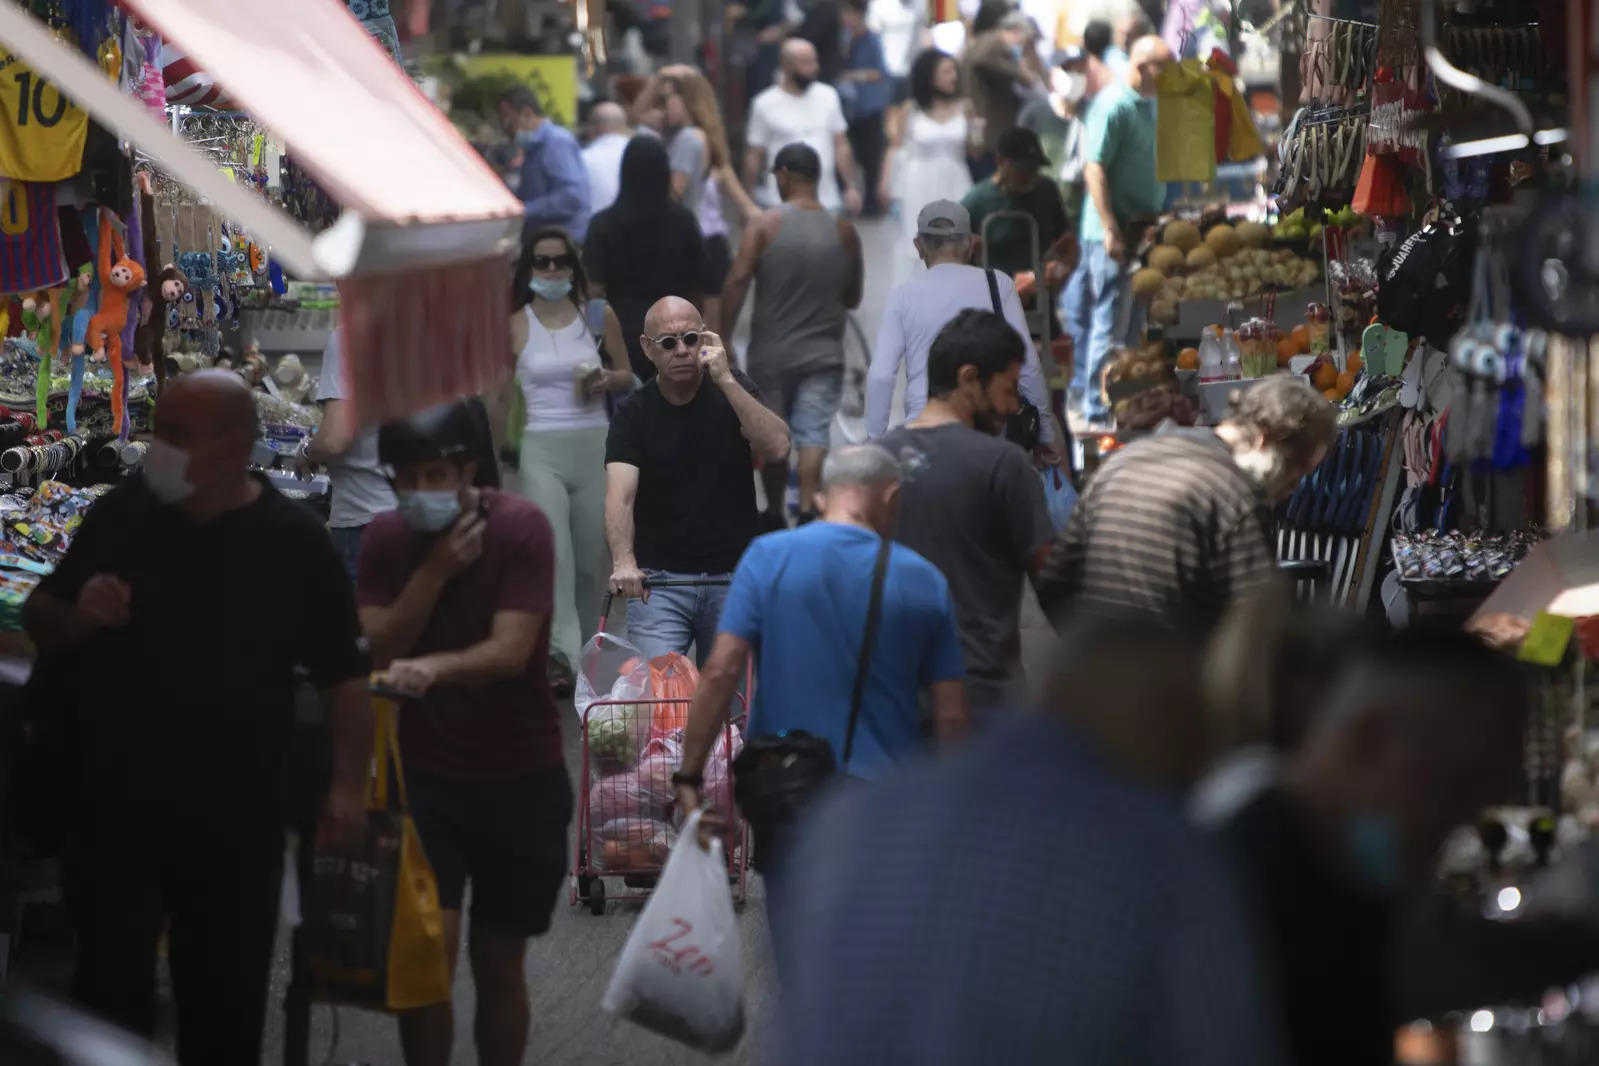 Israelis walk in a busy market in Tel Aviv on Sunday, April 18, 2021. Israel has lifted a public mask mandate in the latest easing of coronavirus restrictions following its mass vaccination drive.